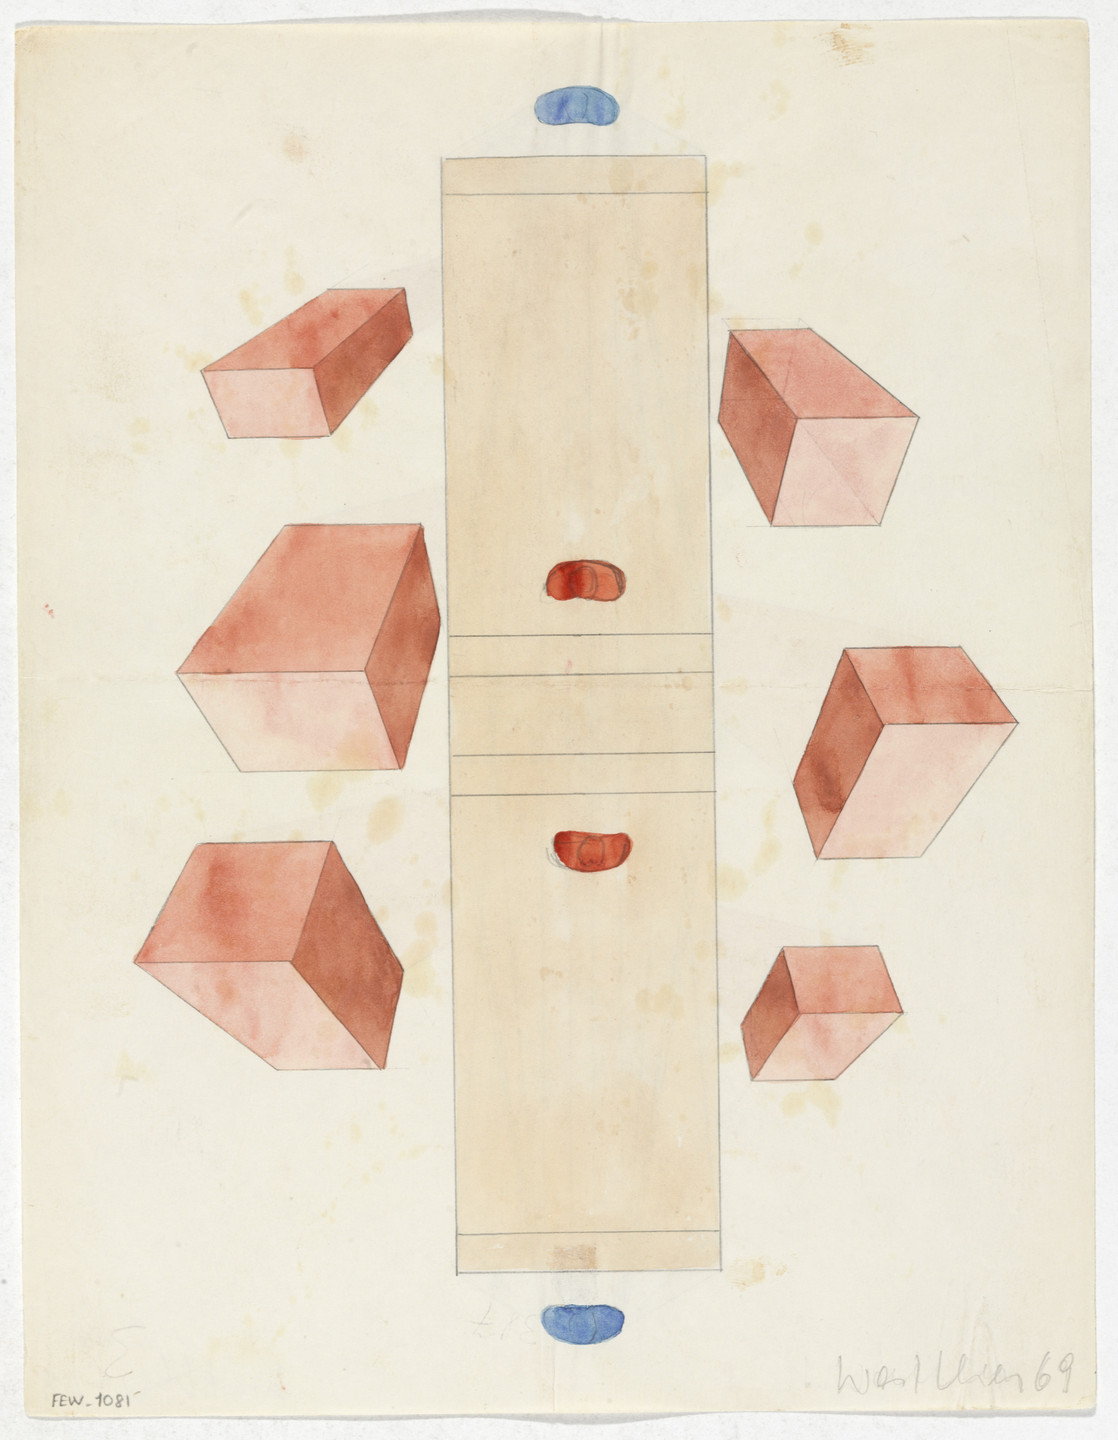 Franz Erhard Walther. Work Drawing: Subdivision. 1969